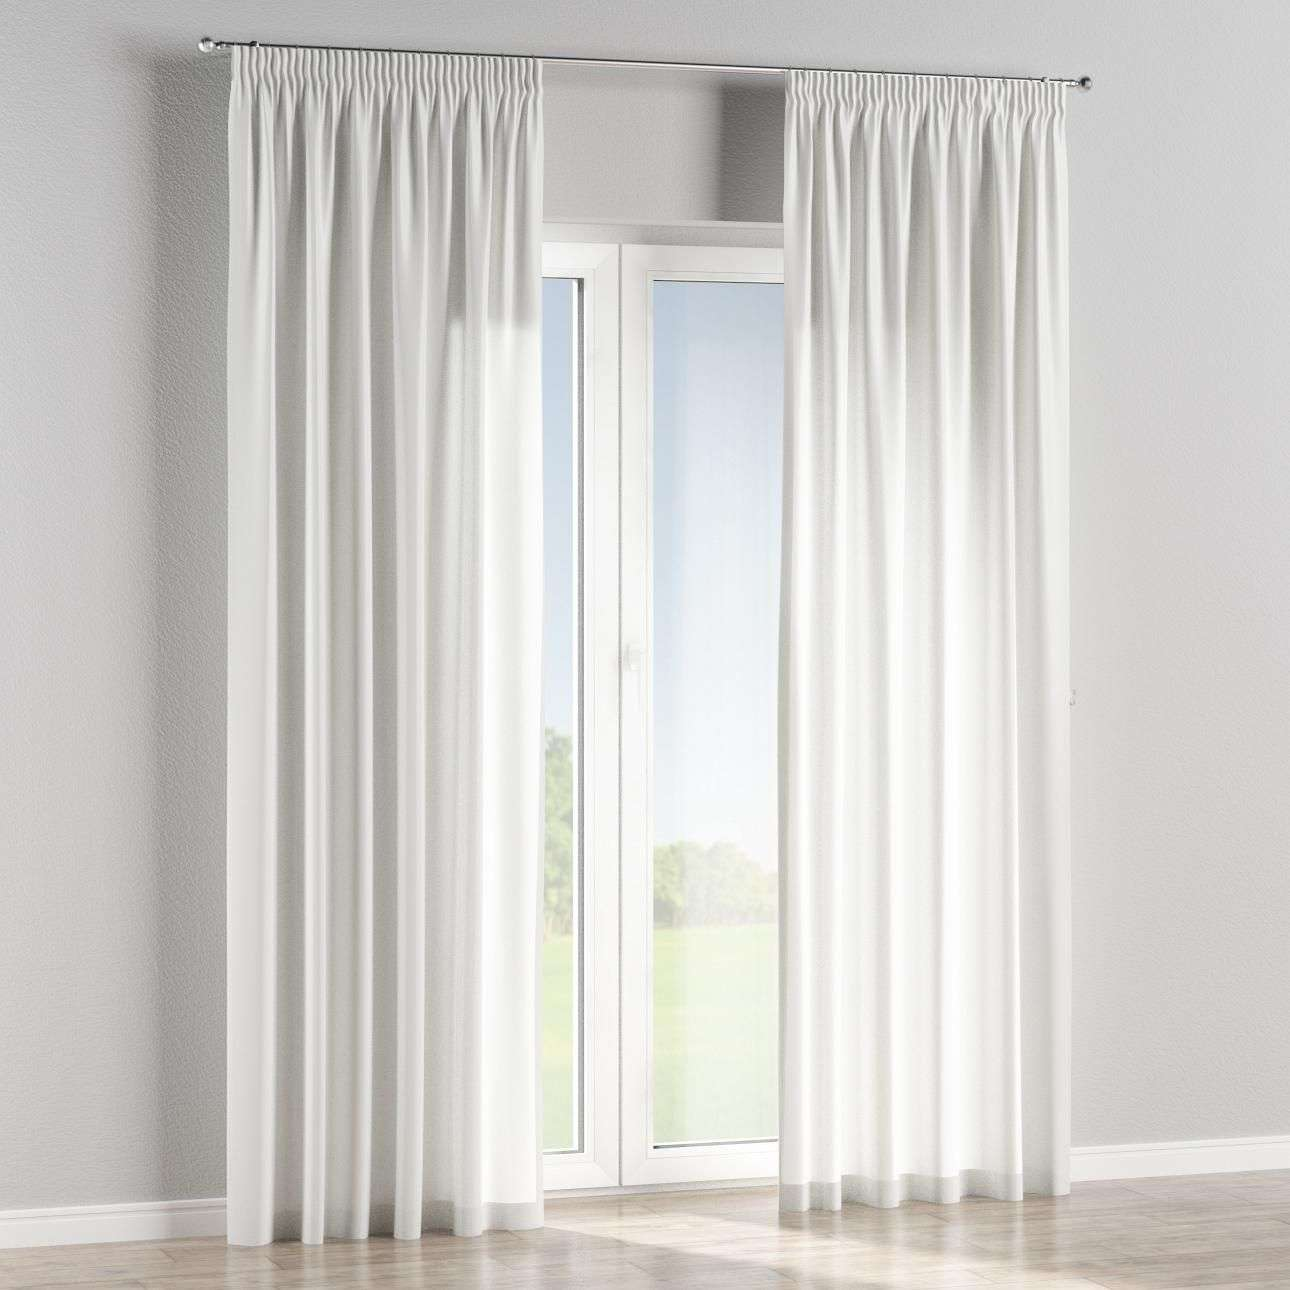 Pencil pleat curtains in collection Rustica, fabric: 138-23